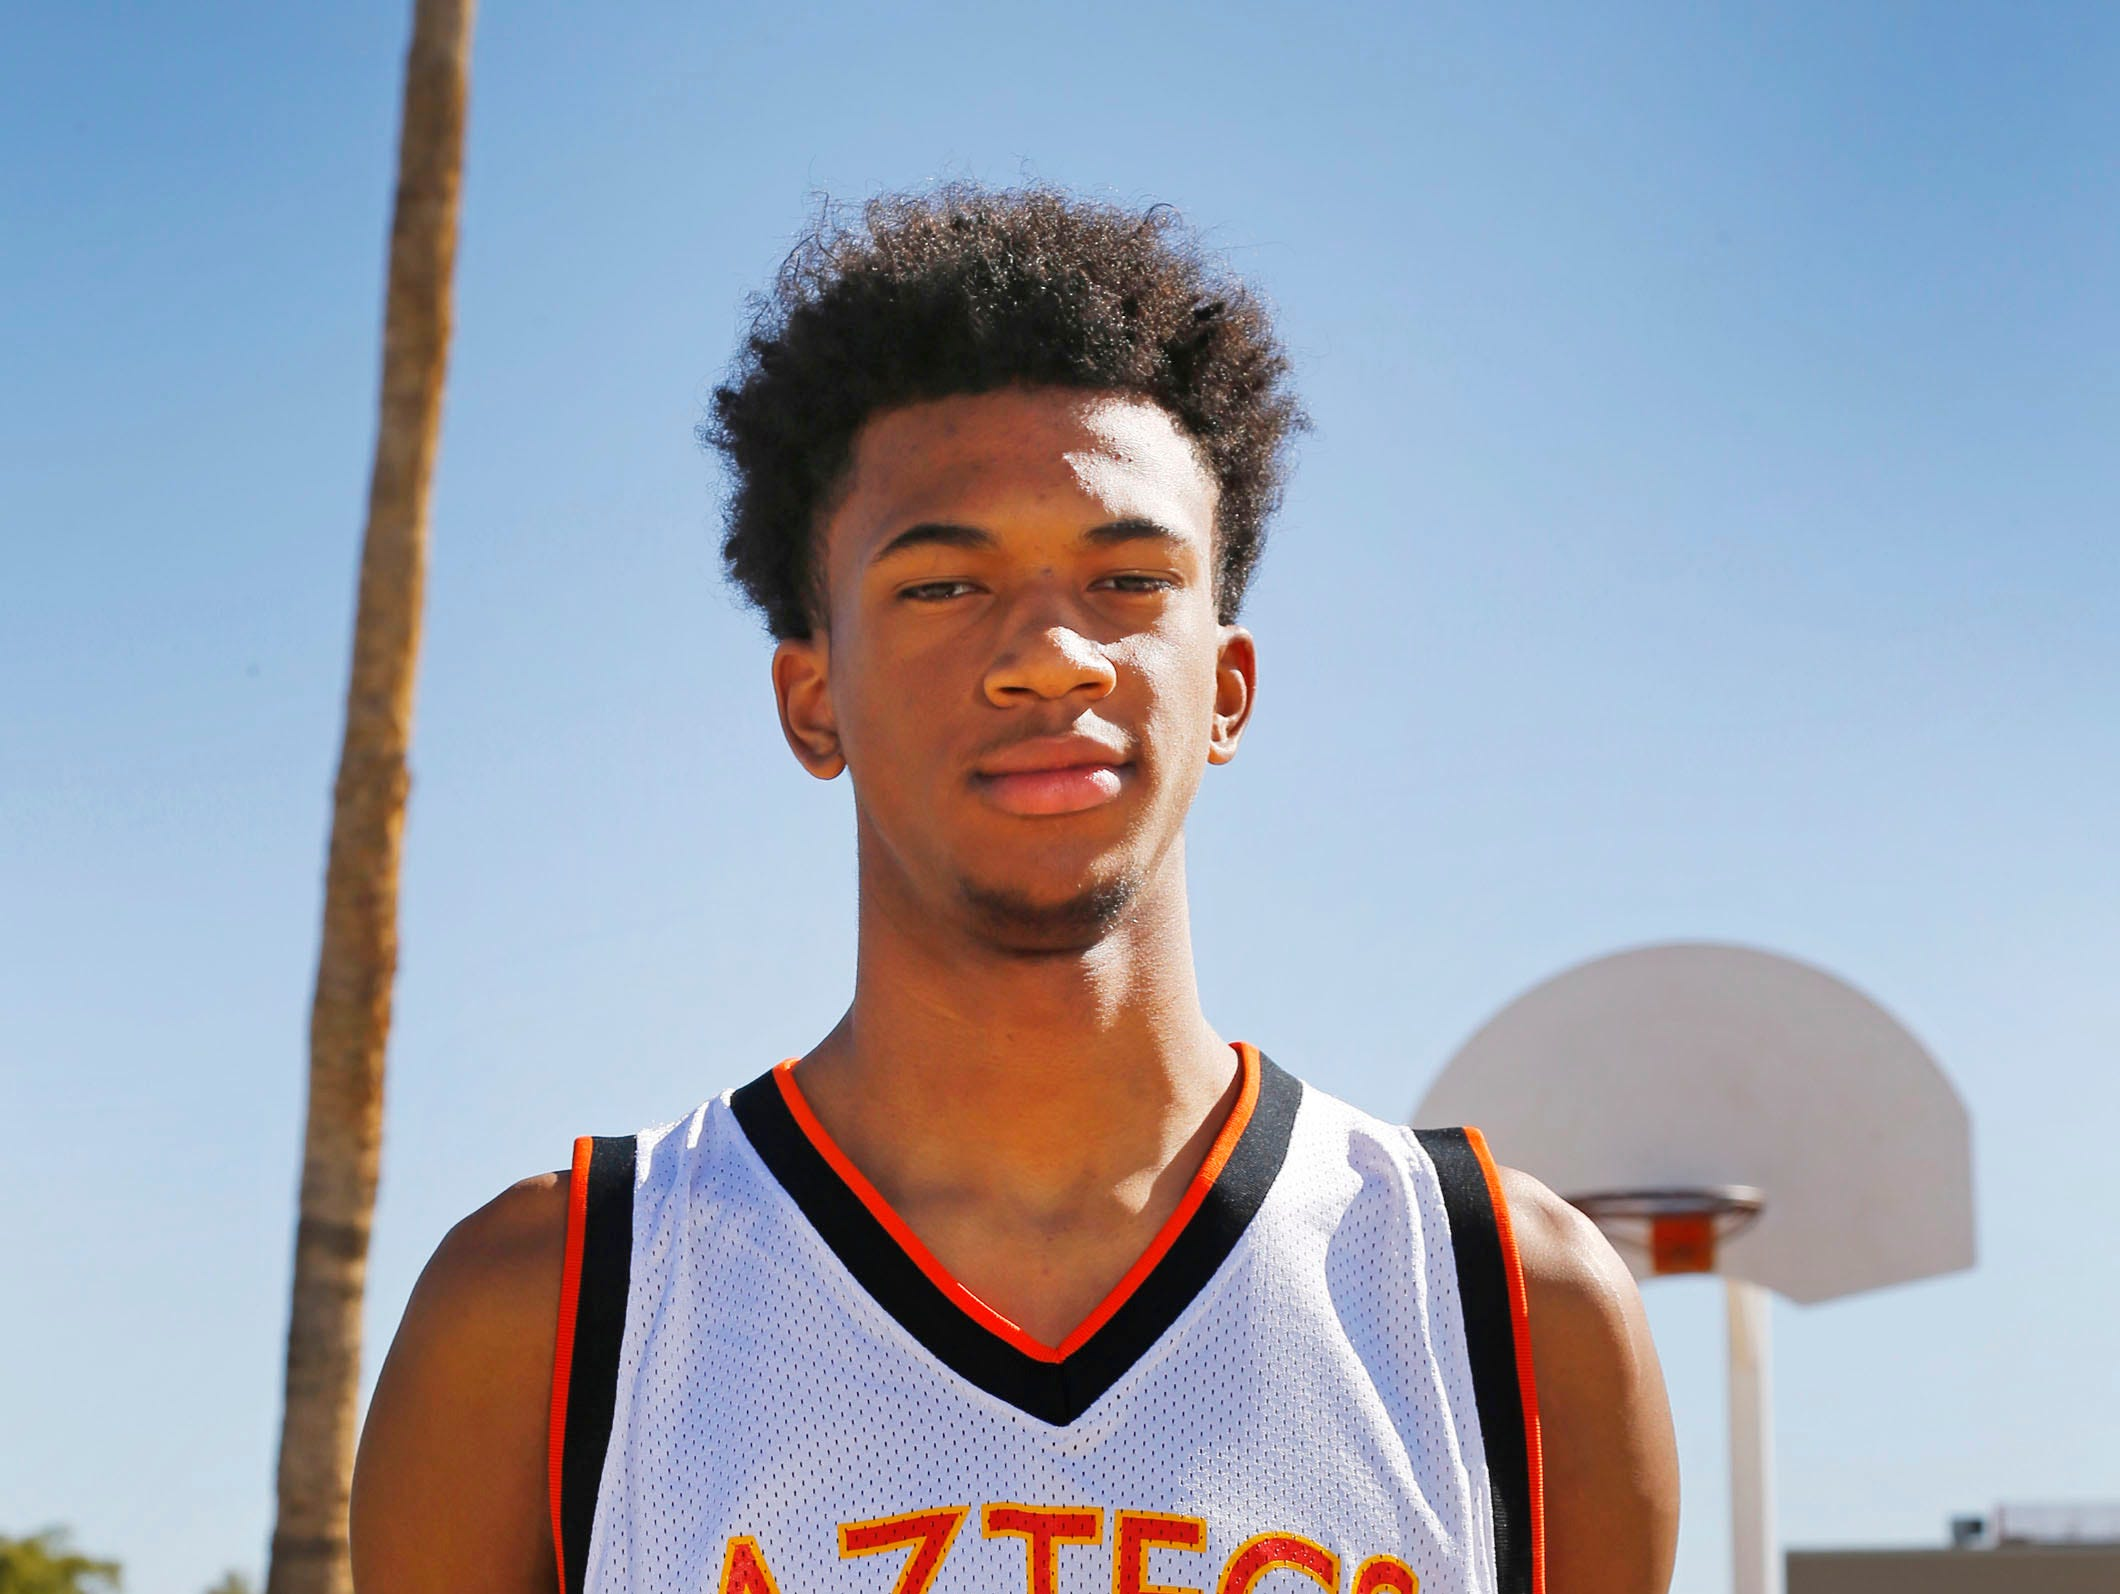 All-Arizona boys basketball player Marvin Bagley III of Corona del Sol was named a CBS Max Preps All-American.